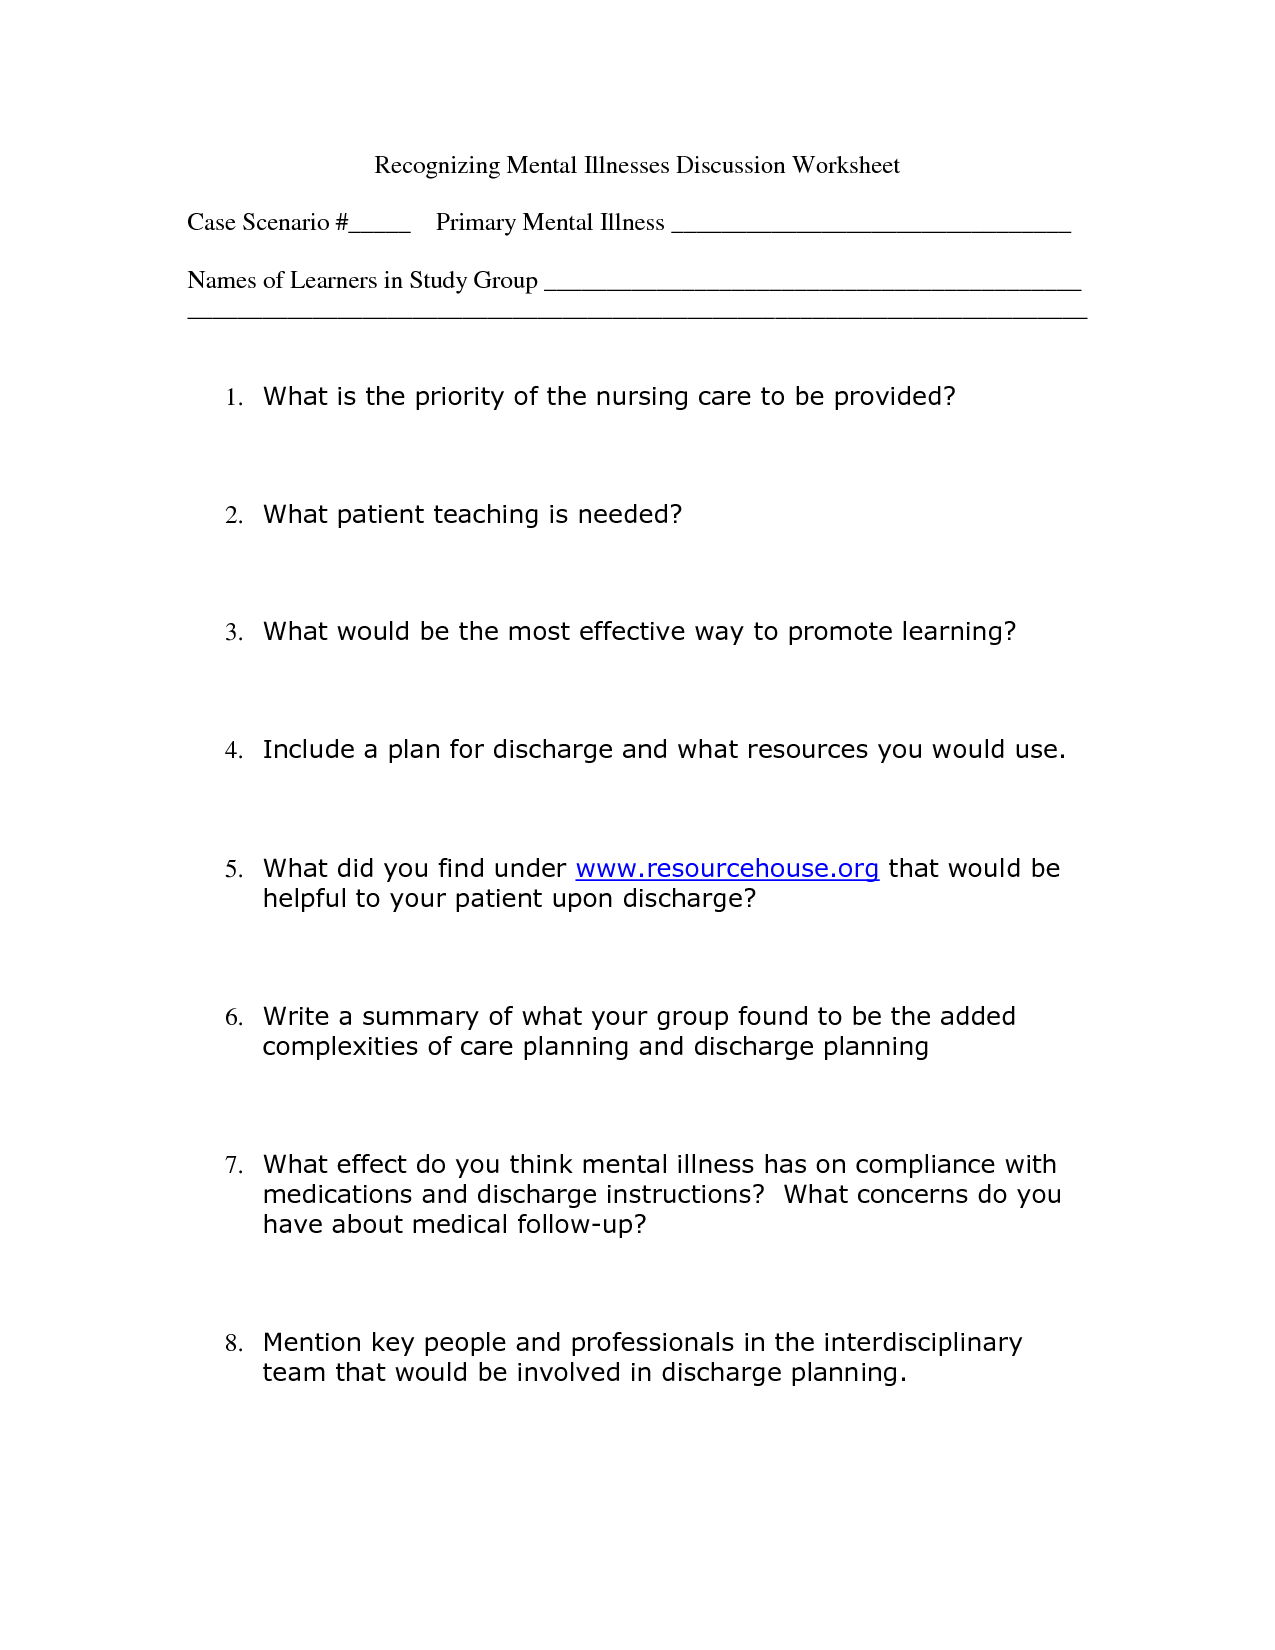 10 Best Images Of Mental Health Crisis Plan Worksheet